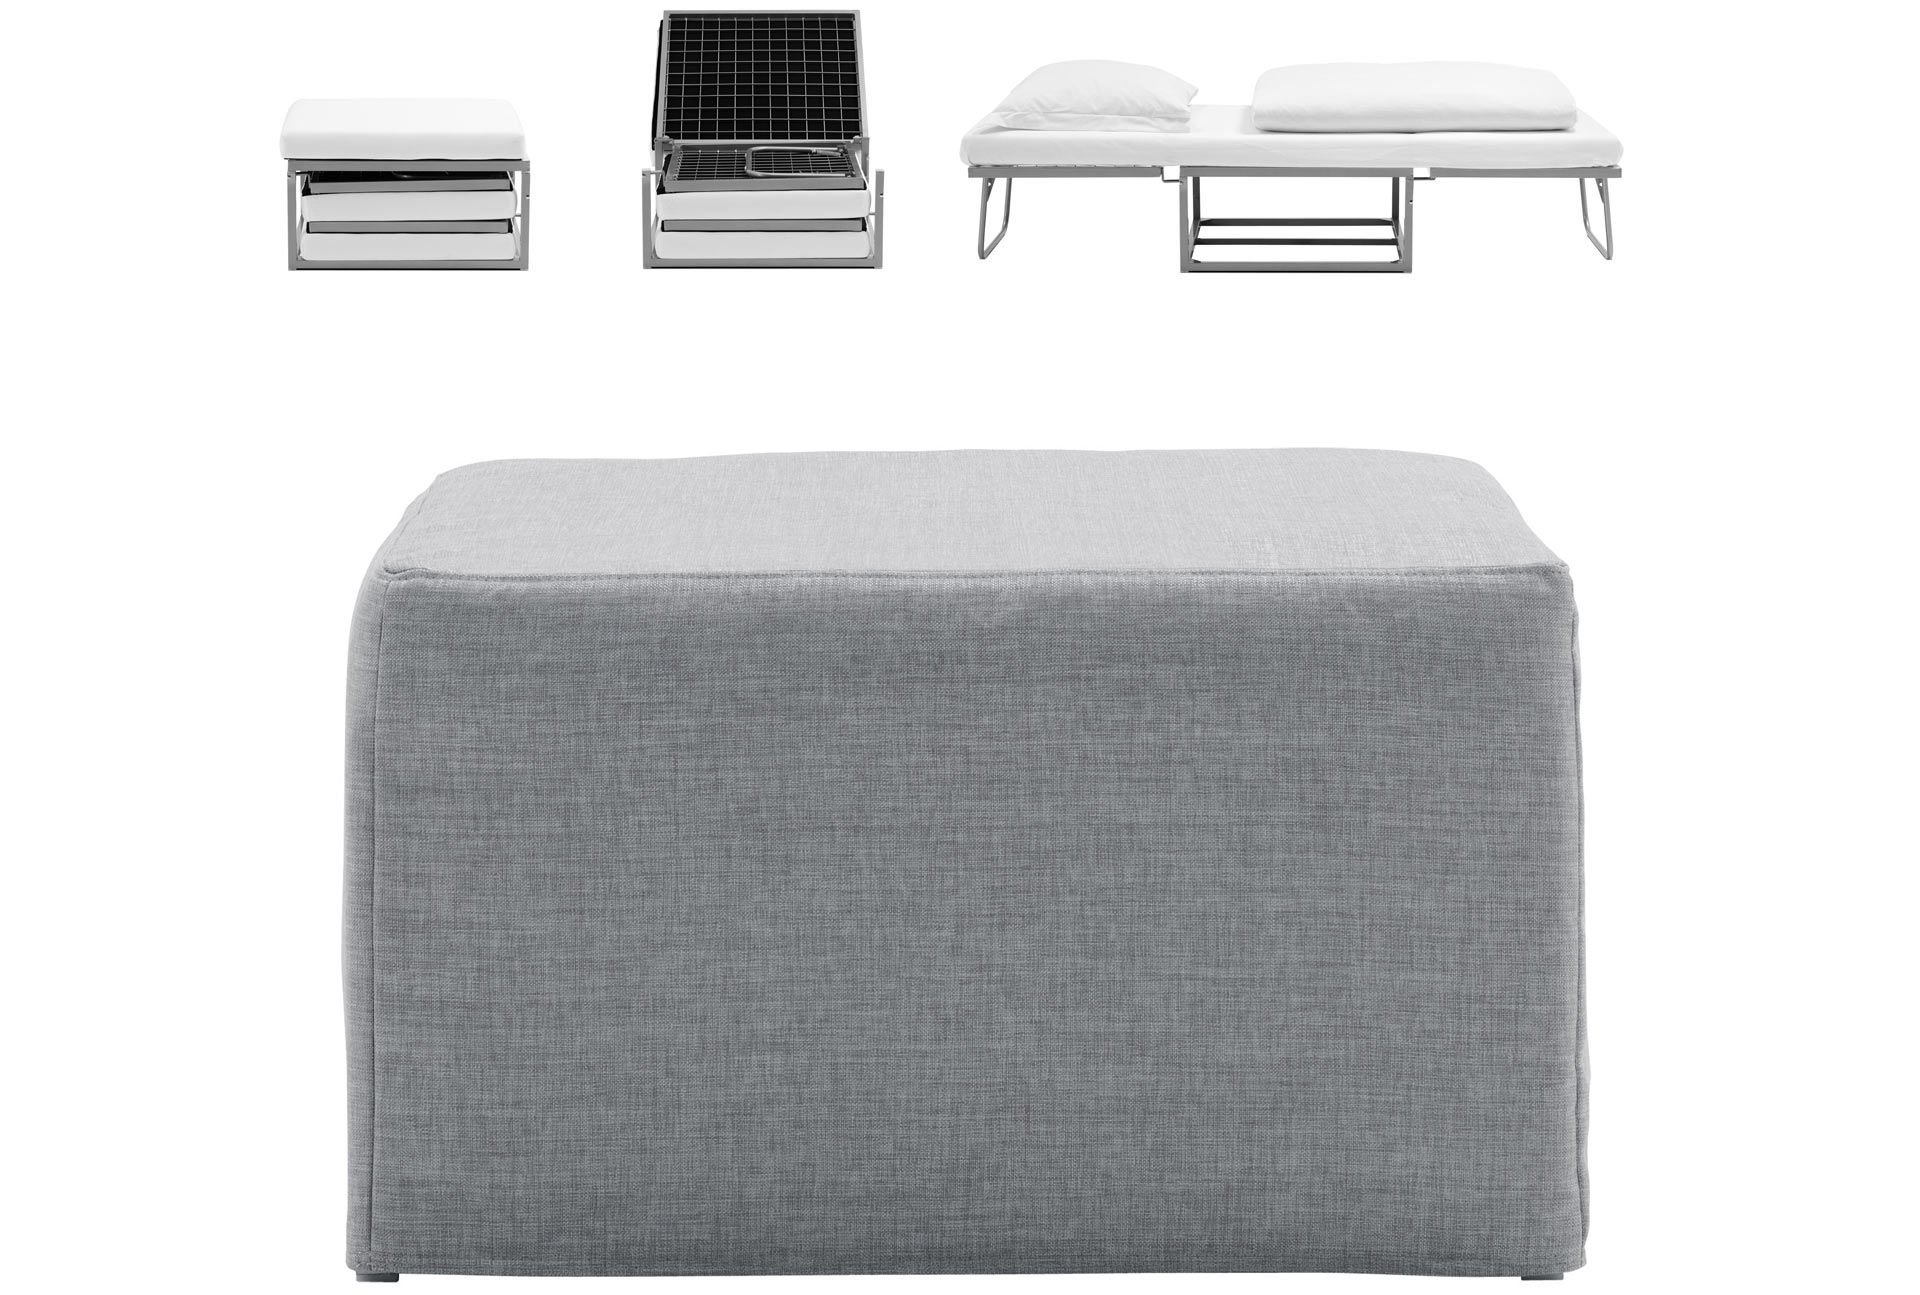 Xtra Poufbed Easily Converts From A Footstool To A Bed For Intended For Footstool Pouffe Sofa Folding Bed (Image 15 of 15)